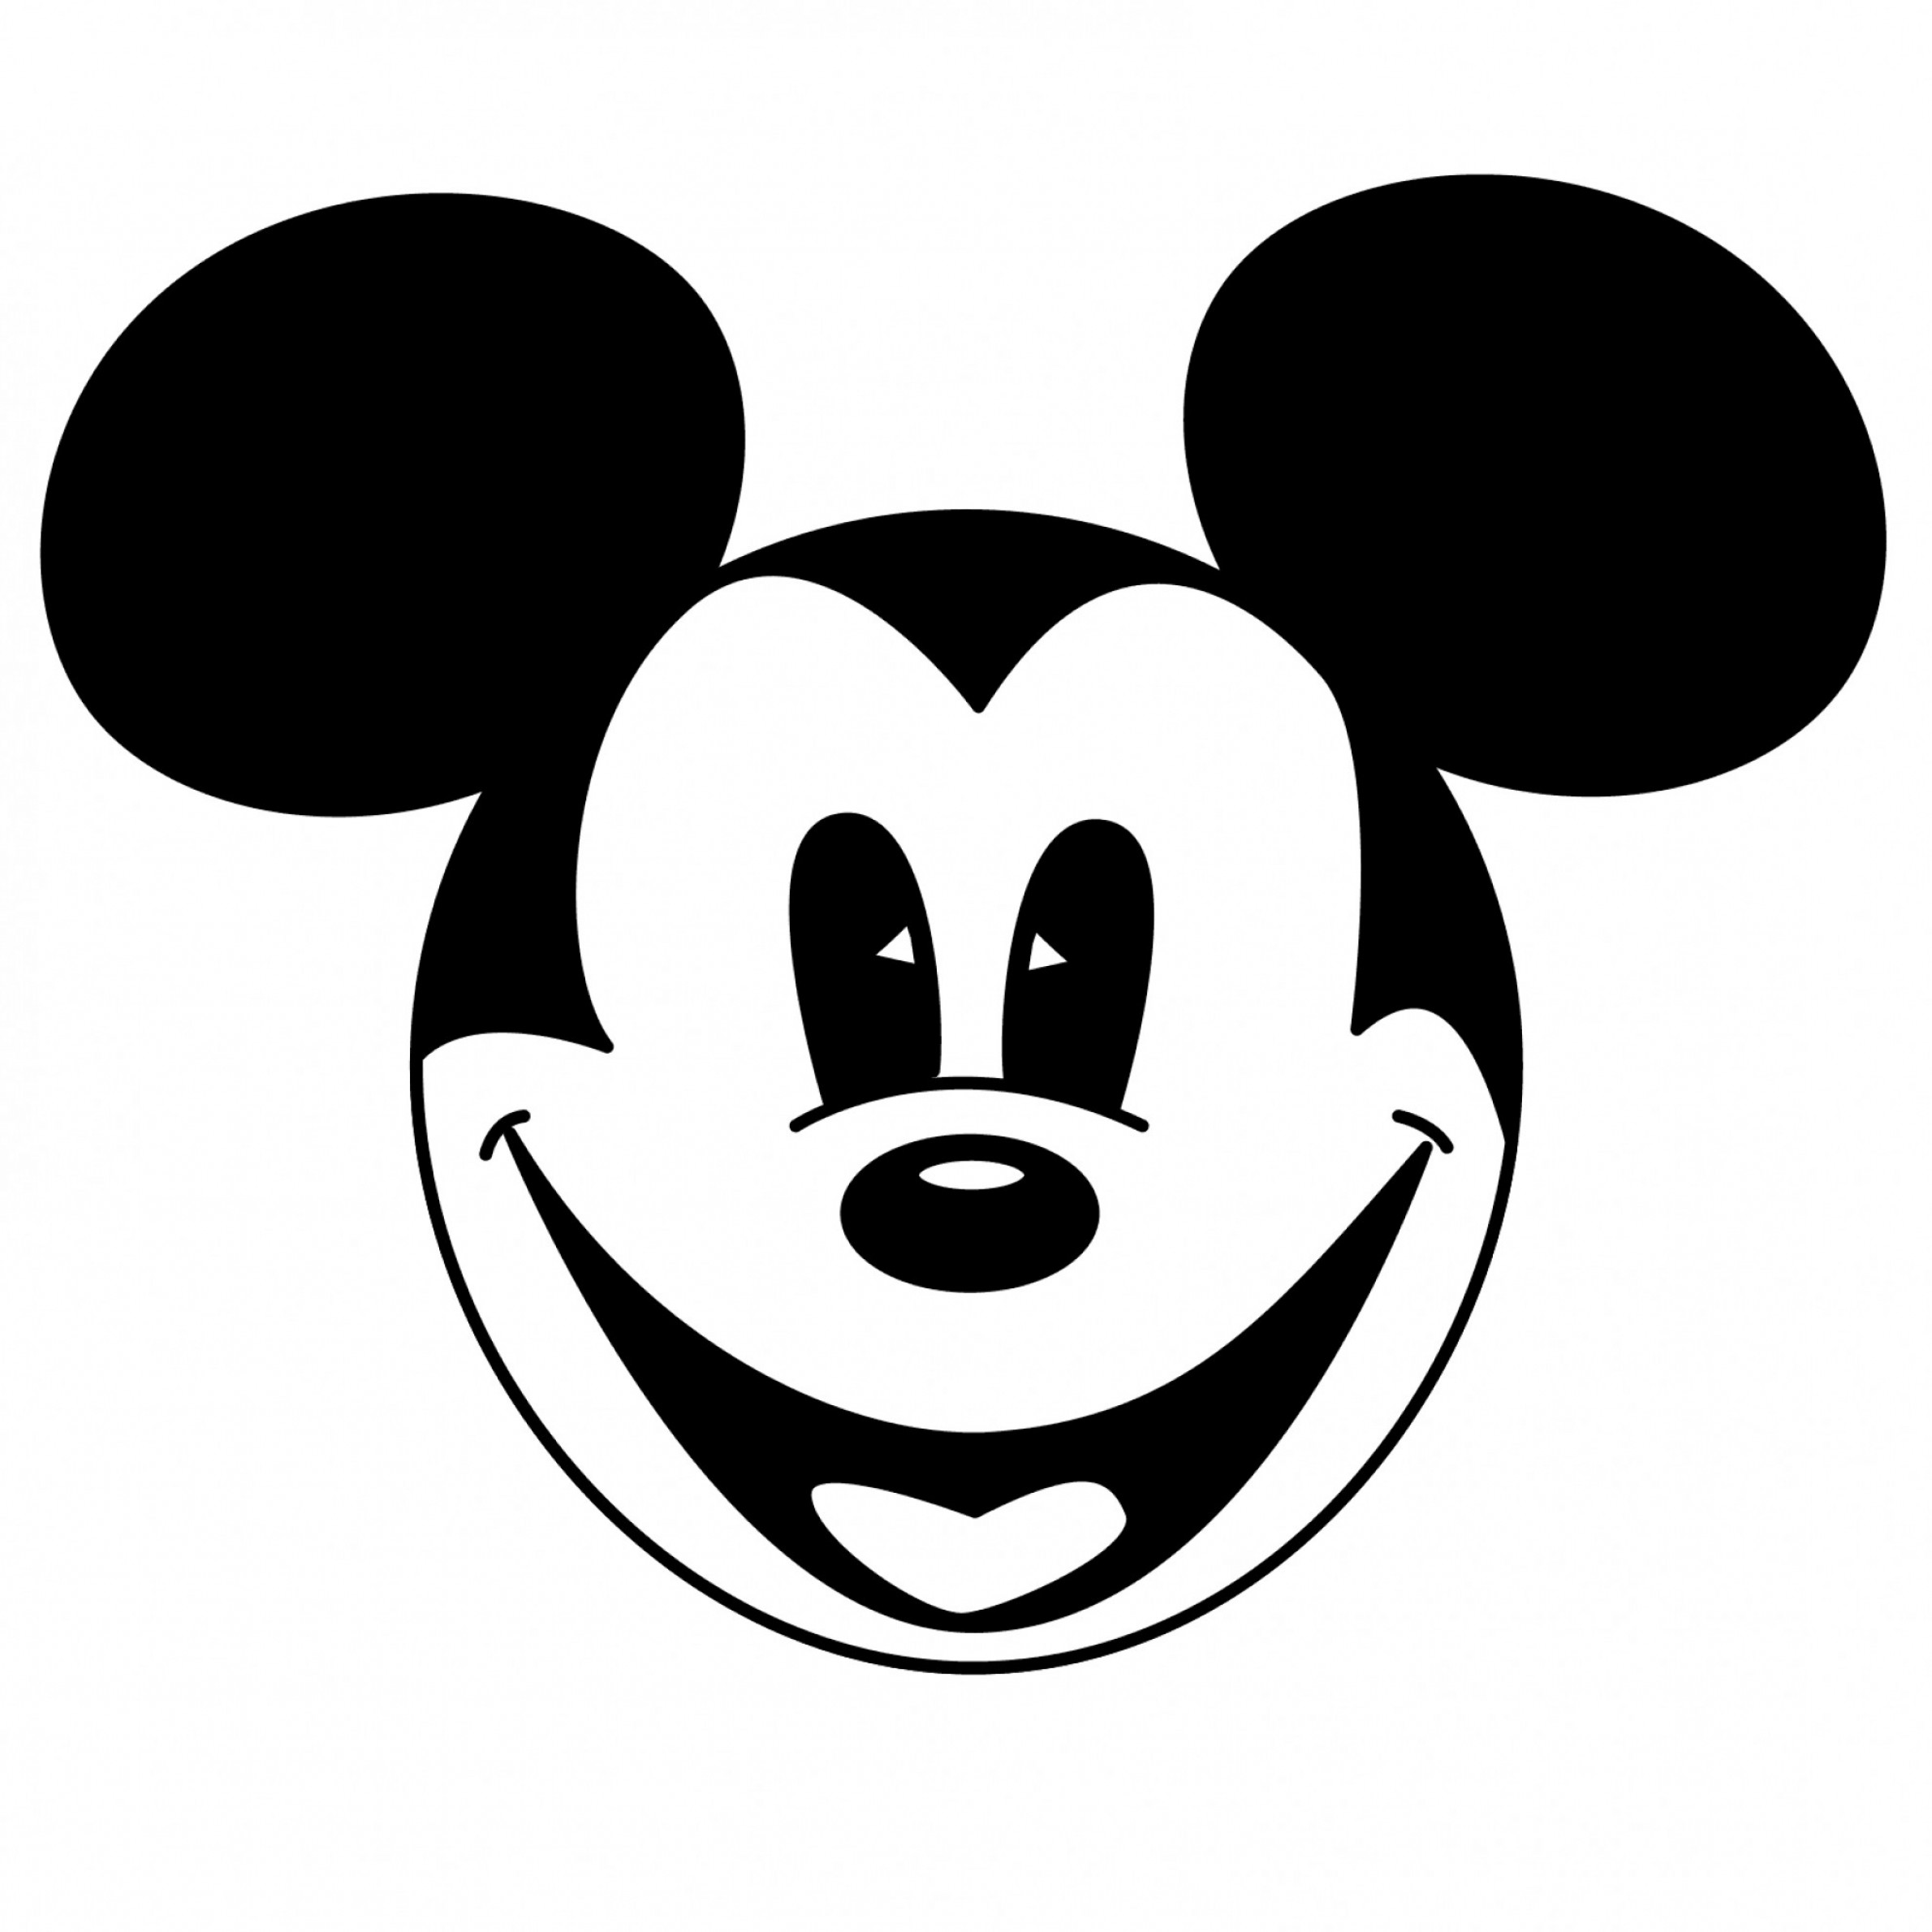 Mouse clipart logo. Mickey black and white